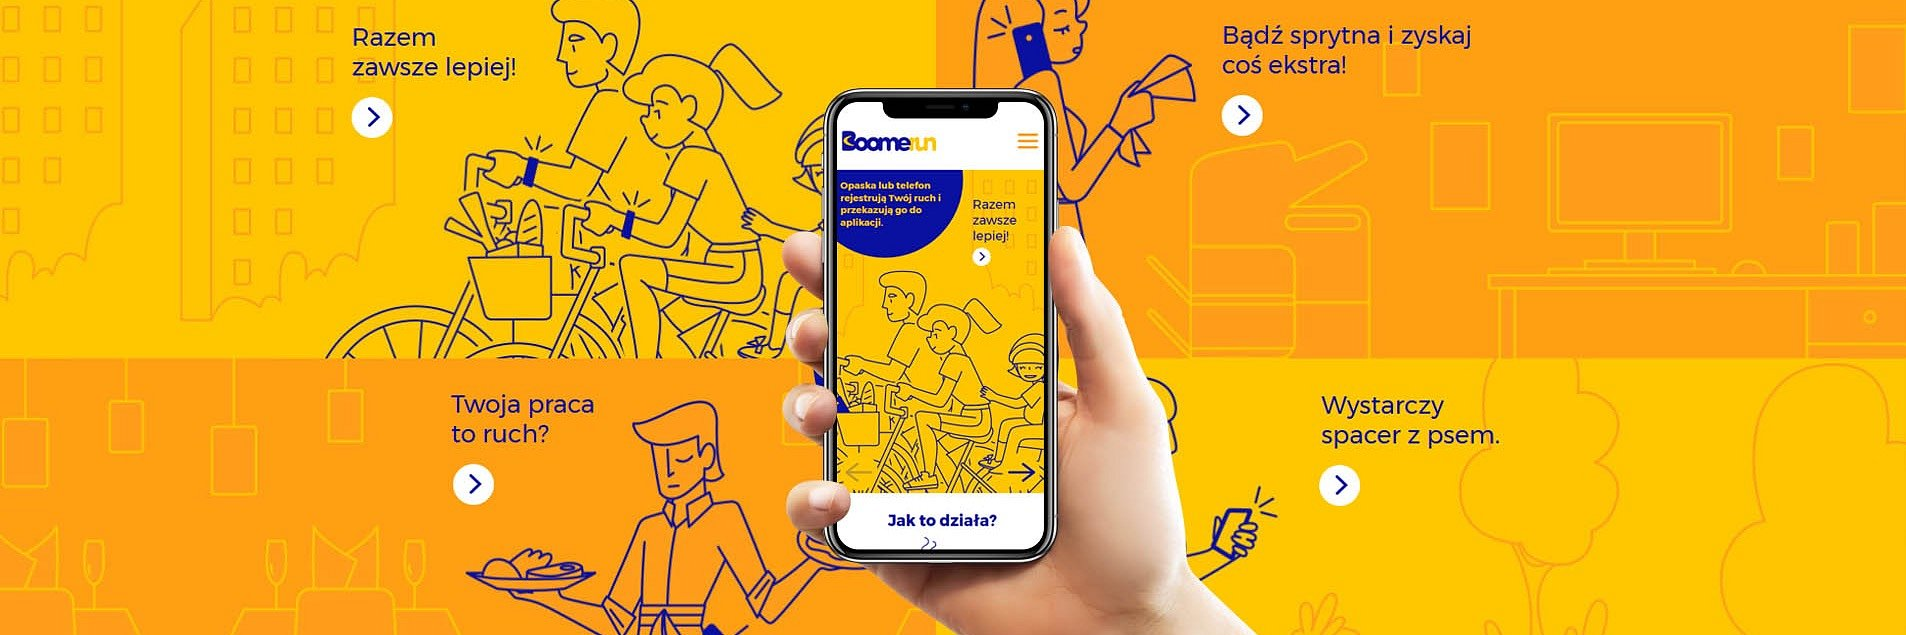 Boomerun startup- mobile app for sporty's